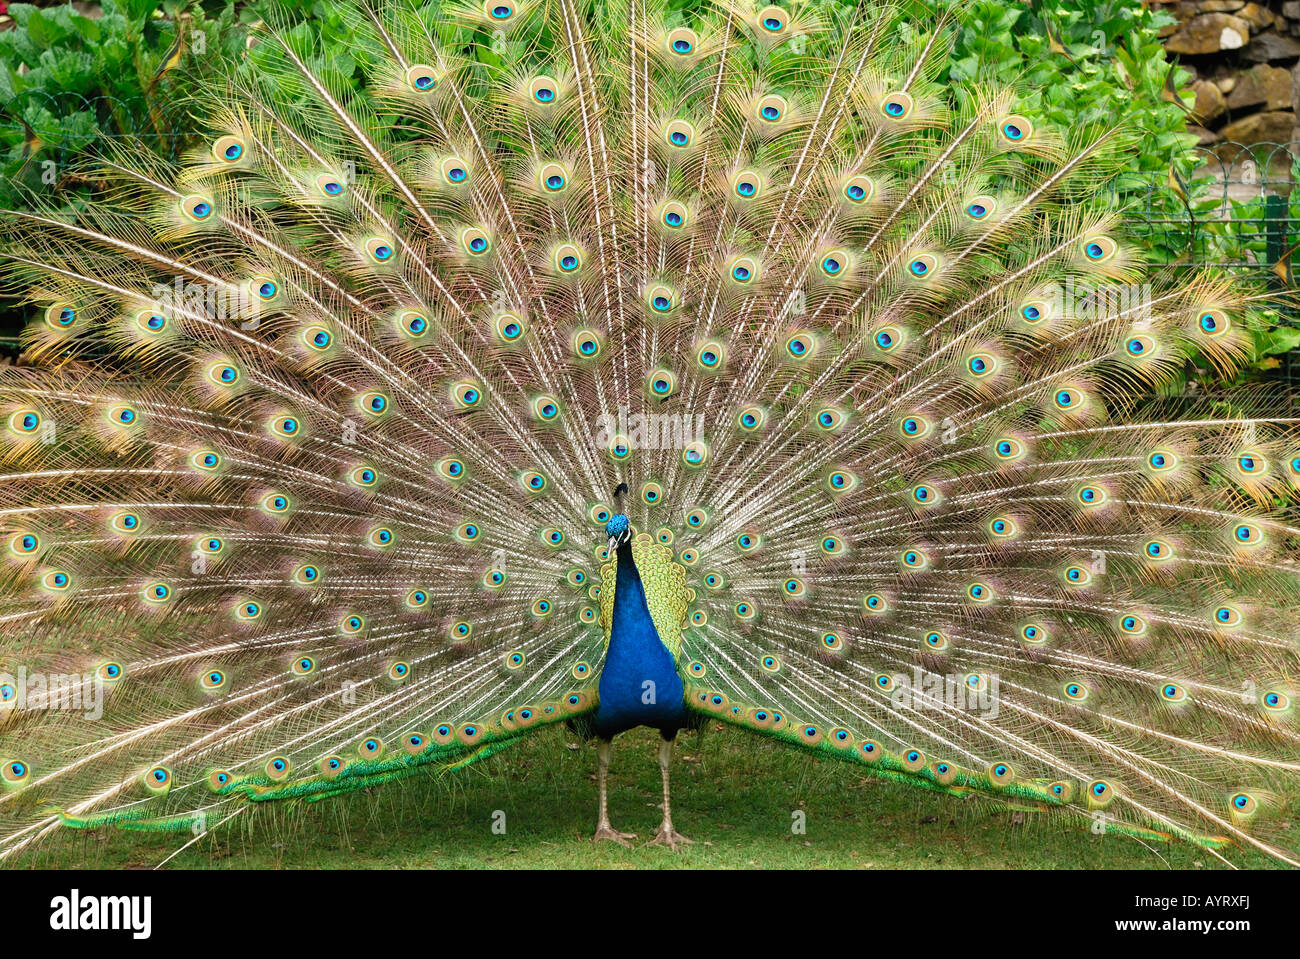 Indian Peafowl or Blue Peacock (Pavo cristatus) with its feathers fanned, showing its plumage - Stock Image